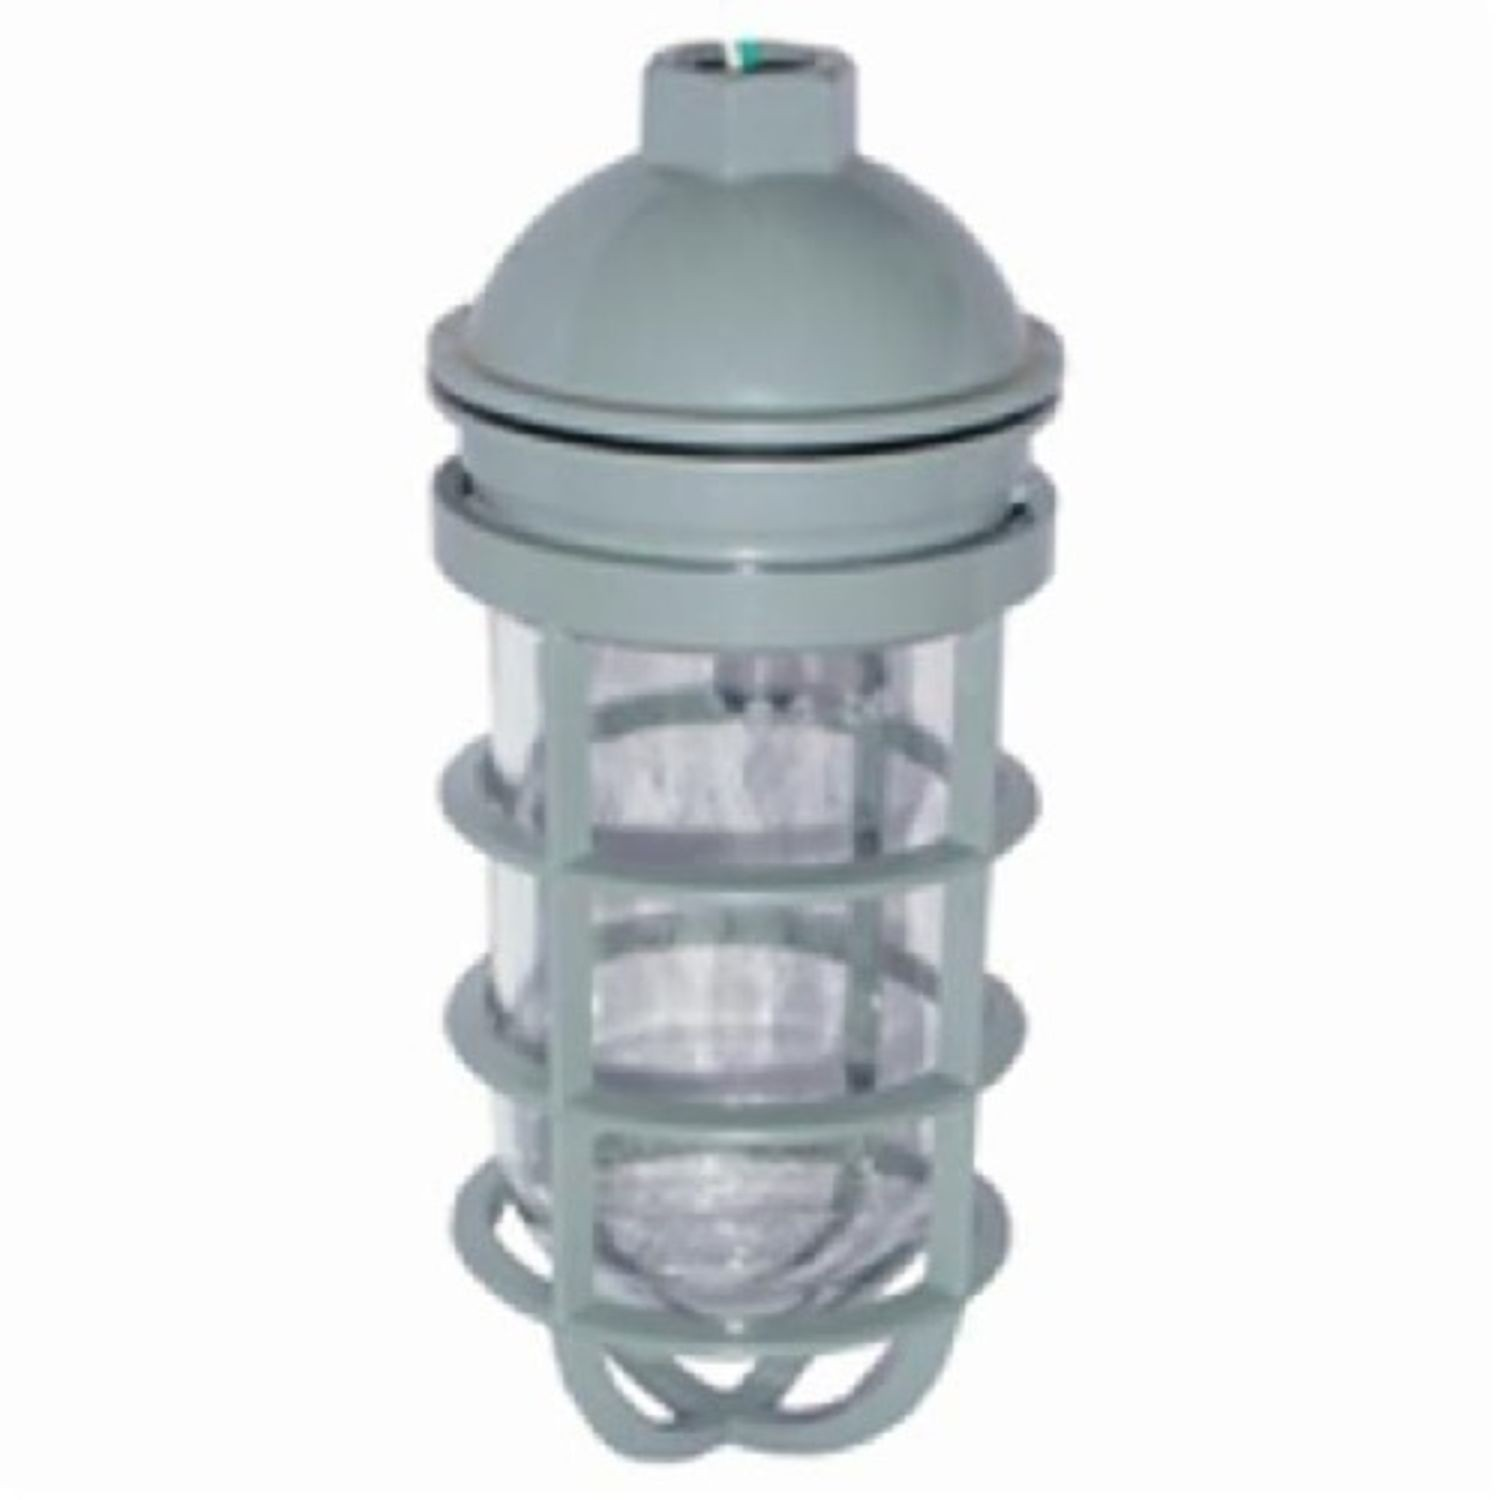 Cooper Crouse-Hinds Zinc Die Cast Light Fixture Wire Guard for Use with Vaporproof Lighting 3 Pack